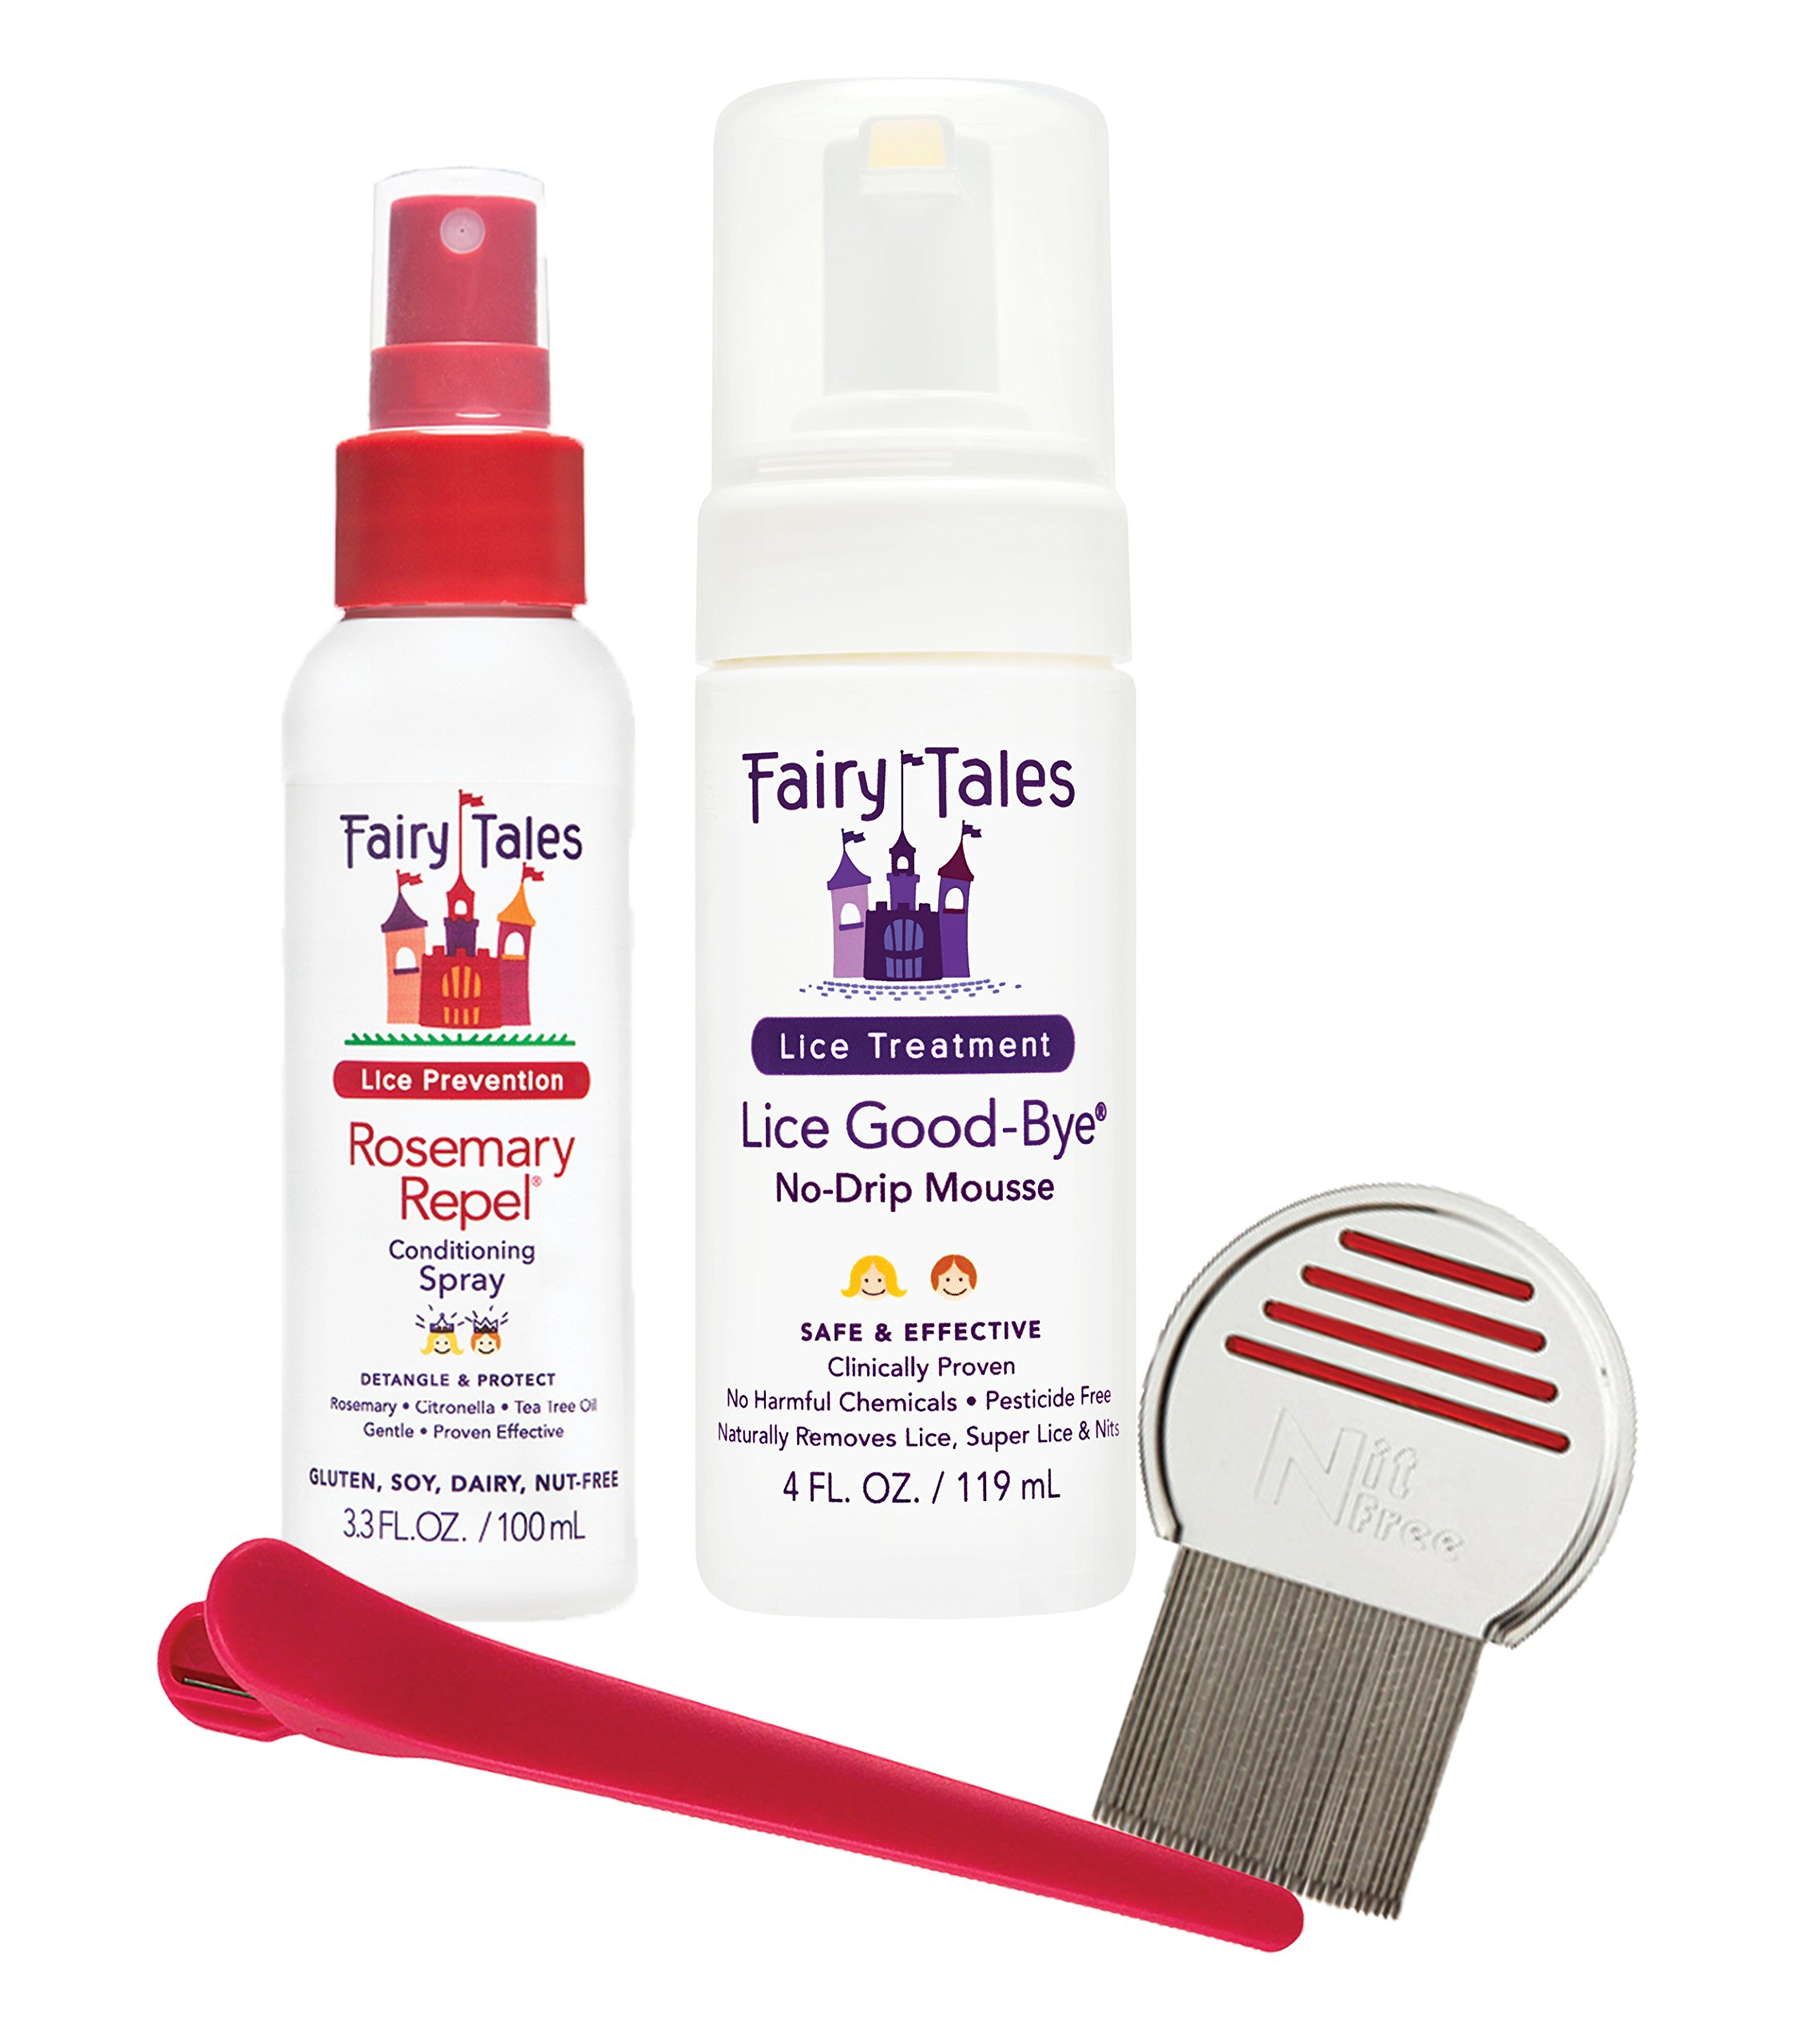 Fairy Tales Lice Good-Bye Survival Kit for Kids, 4 oz product image